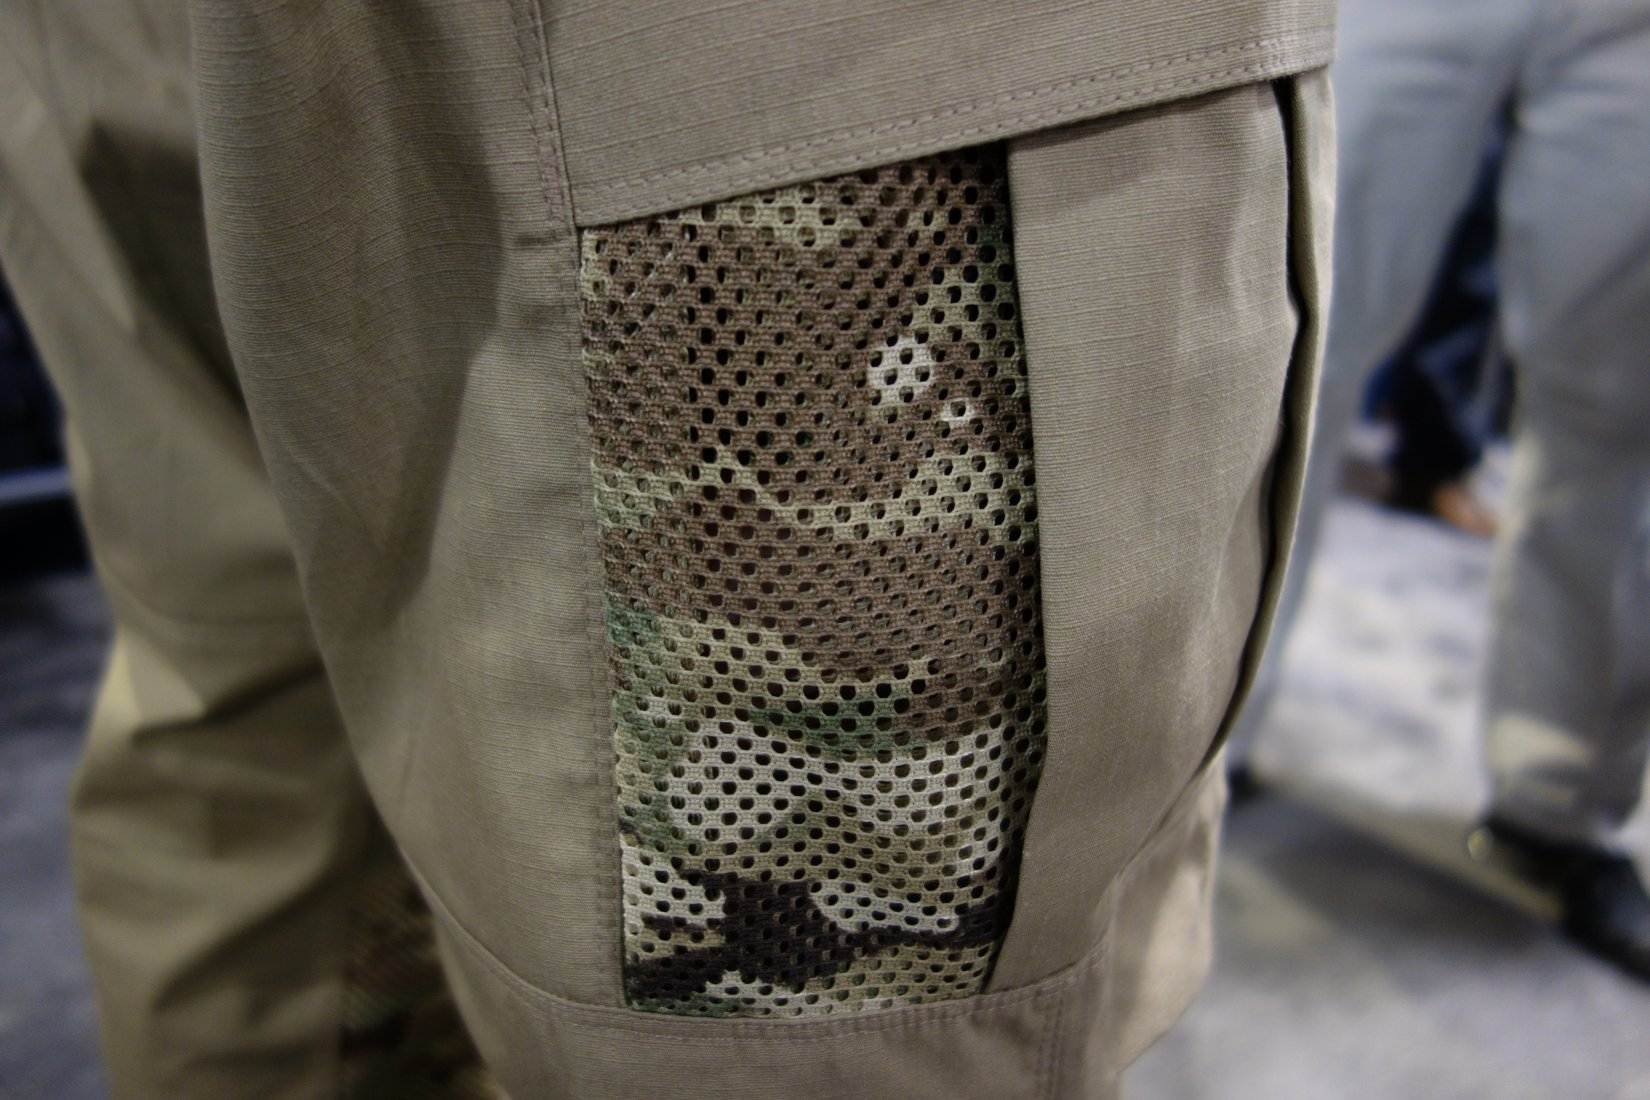 Vertx Airflow Phantom Ops Pant by Fighter Design Combat Tactical Pants with Passive Cooling Technology Evaporative Cooling Adam Slank SHOT Show 2014 David Crane DefenseReview.com DR 10 Vertx Airflow Phantom Ops Pant by Fighter Design: Combat/Tactical Pants with Passive Cooling Mesh Technology (Video!)